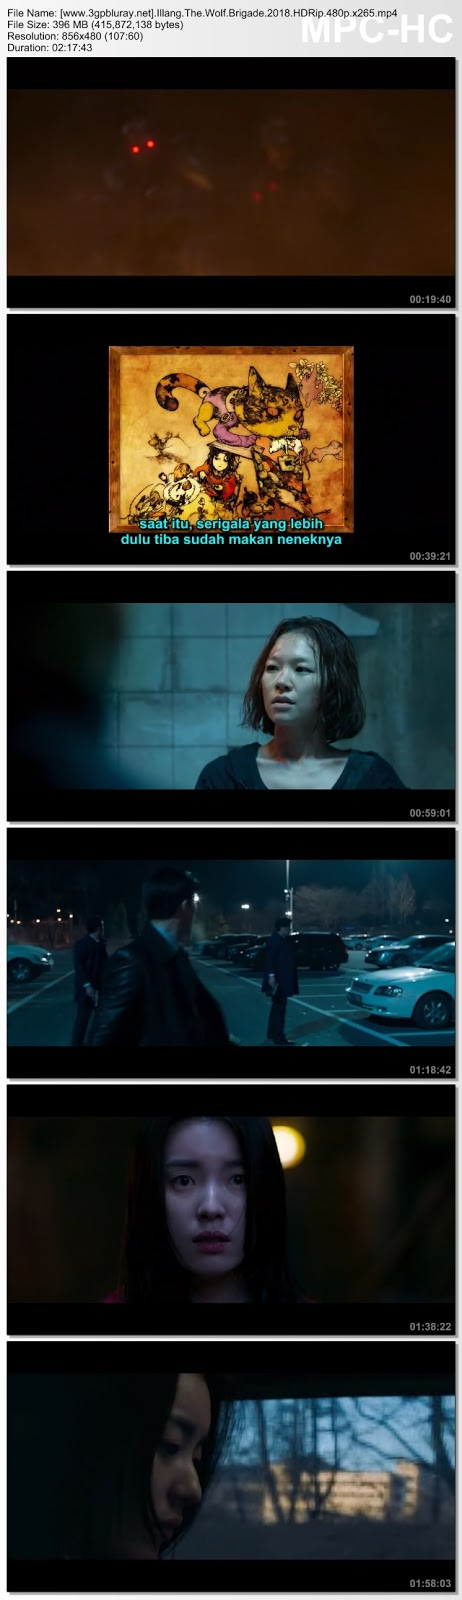 Screenshots Download Illang: The Wolf Brigade (2018) HDRip 480p & 3GP Subtitle Indonesia